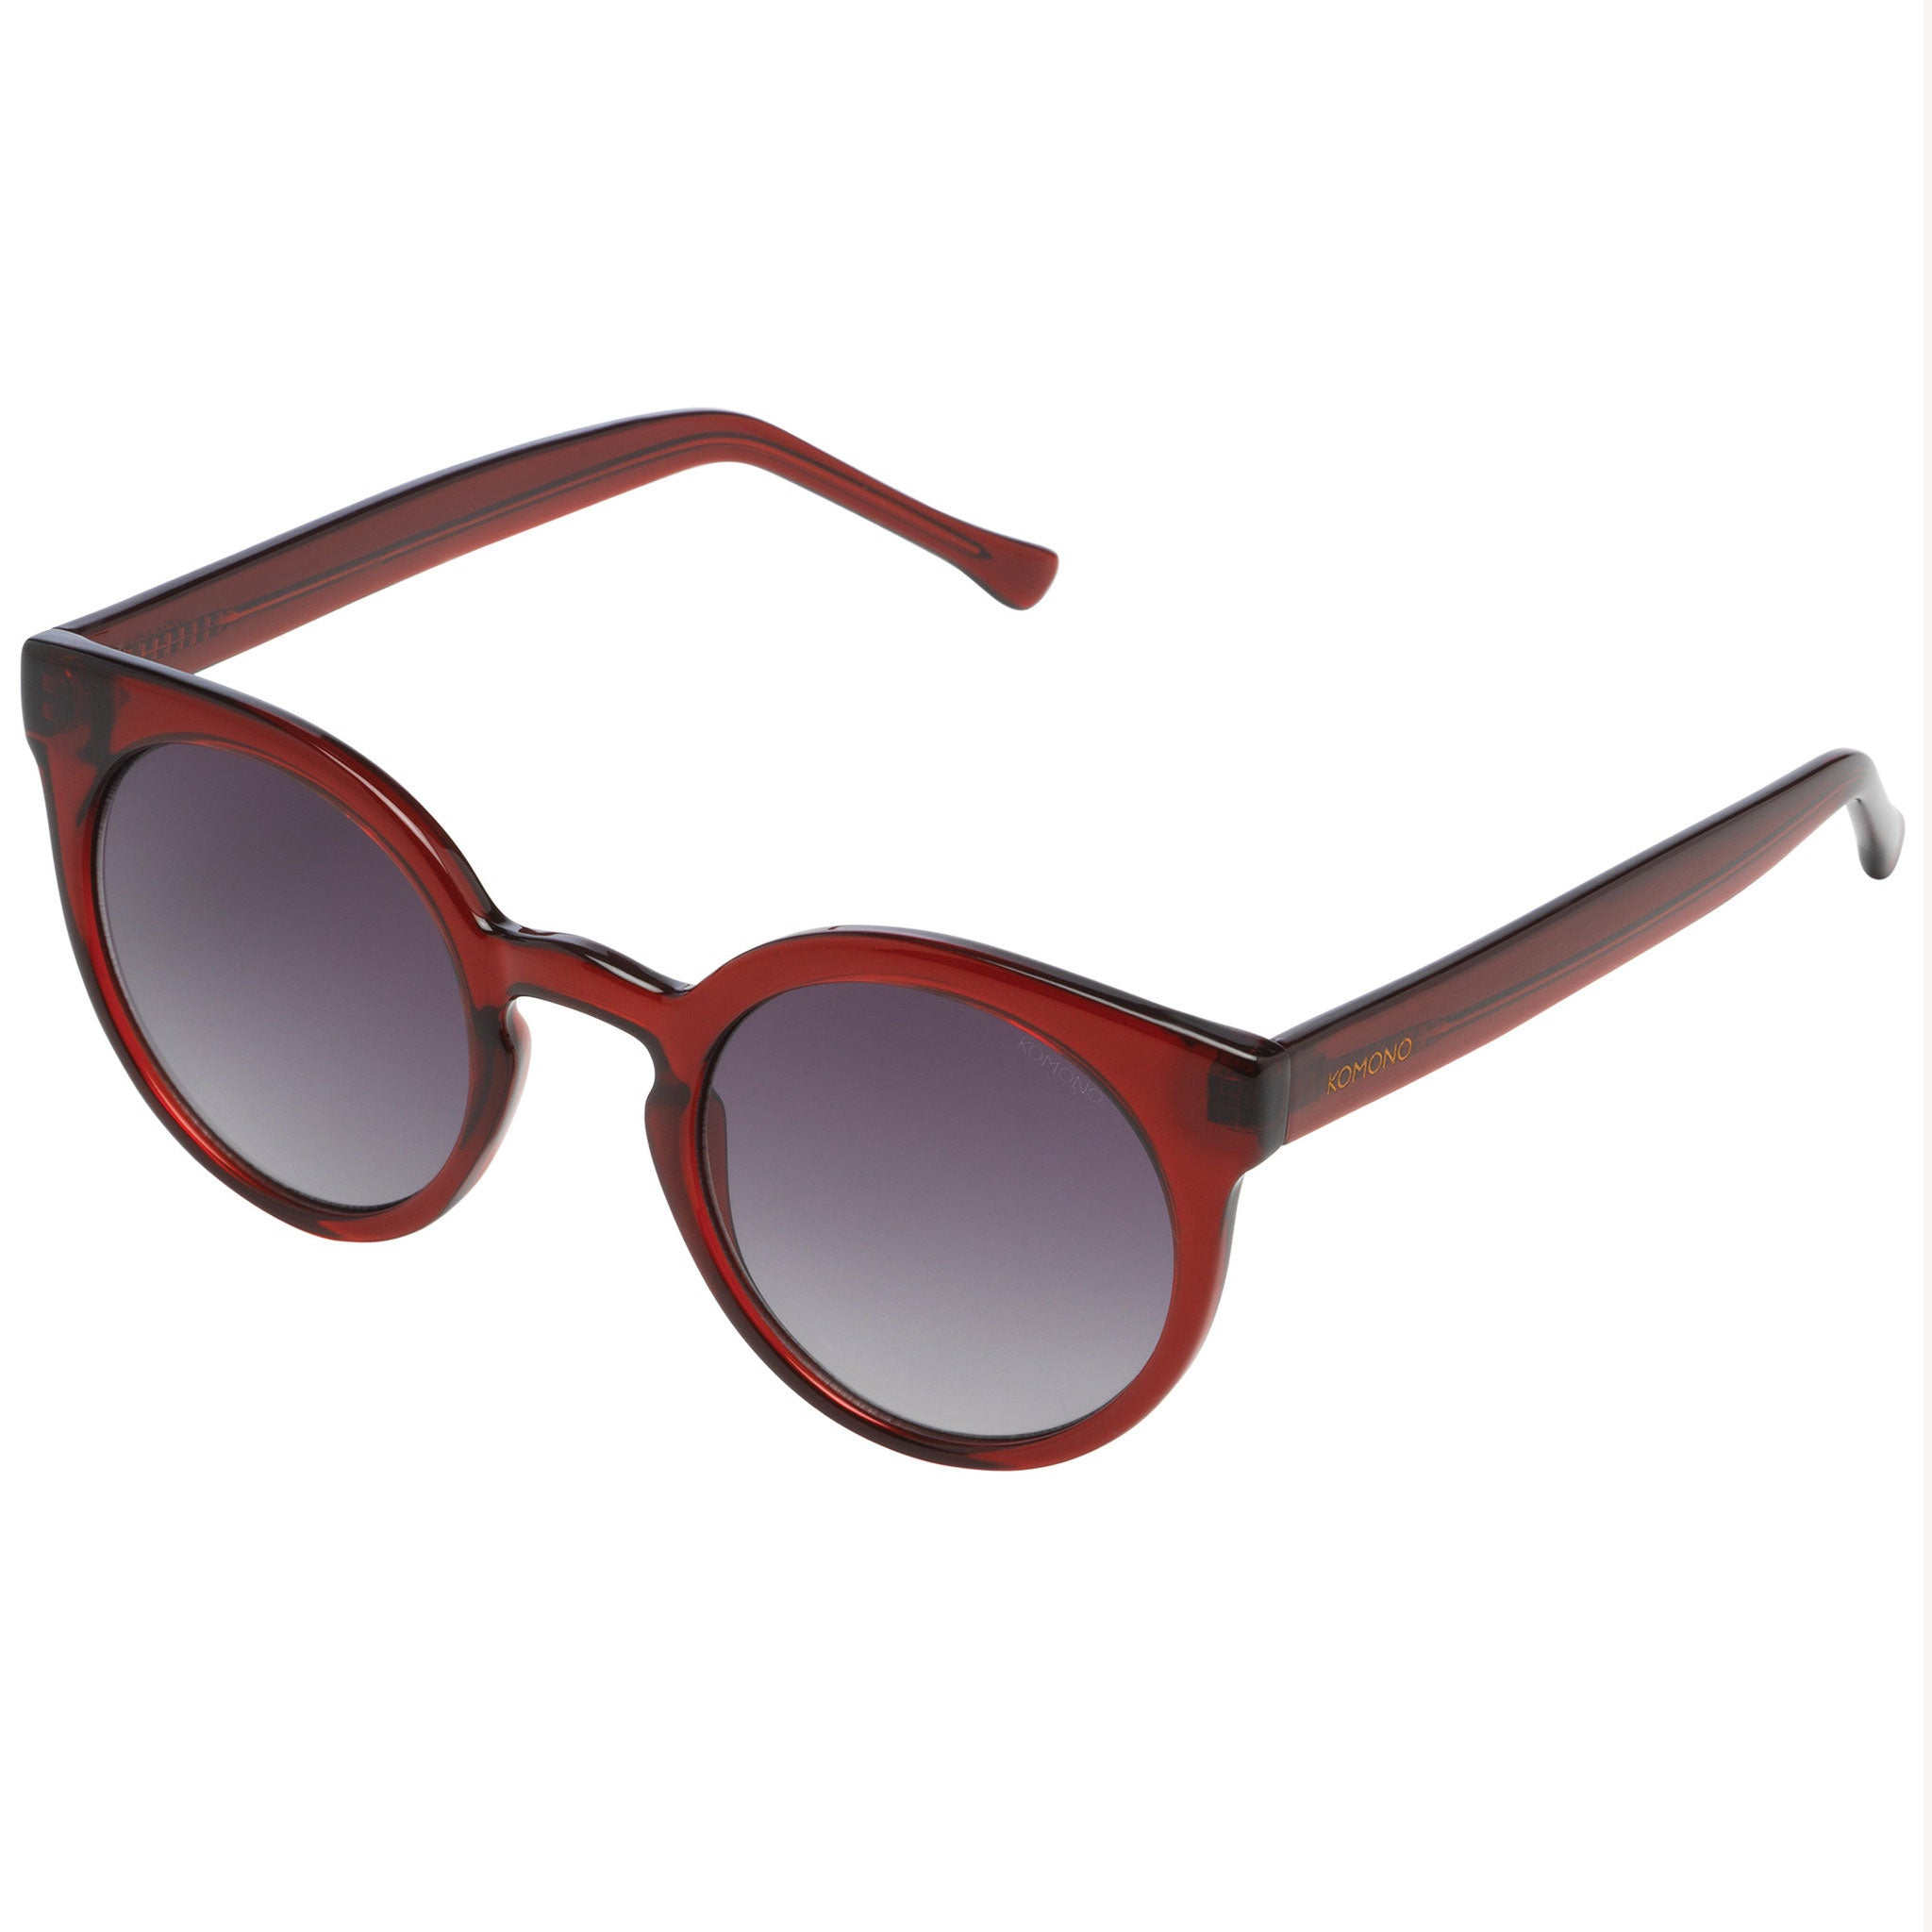 KOMONO Lulu Sunglasses in Burgundy